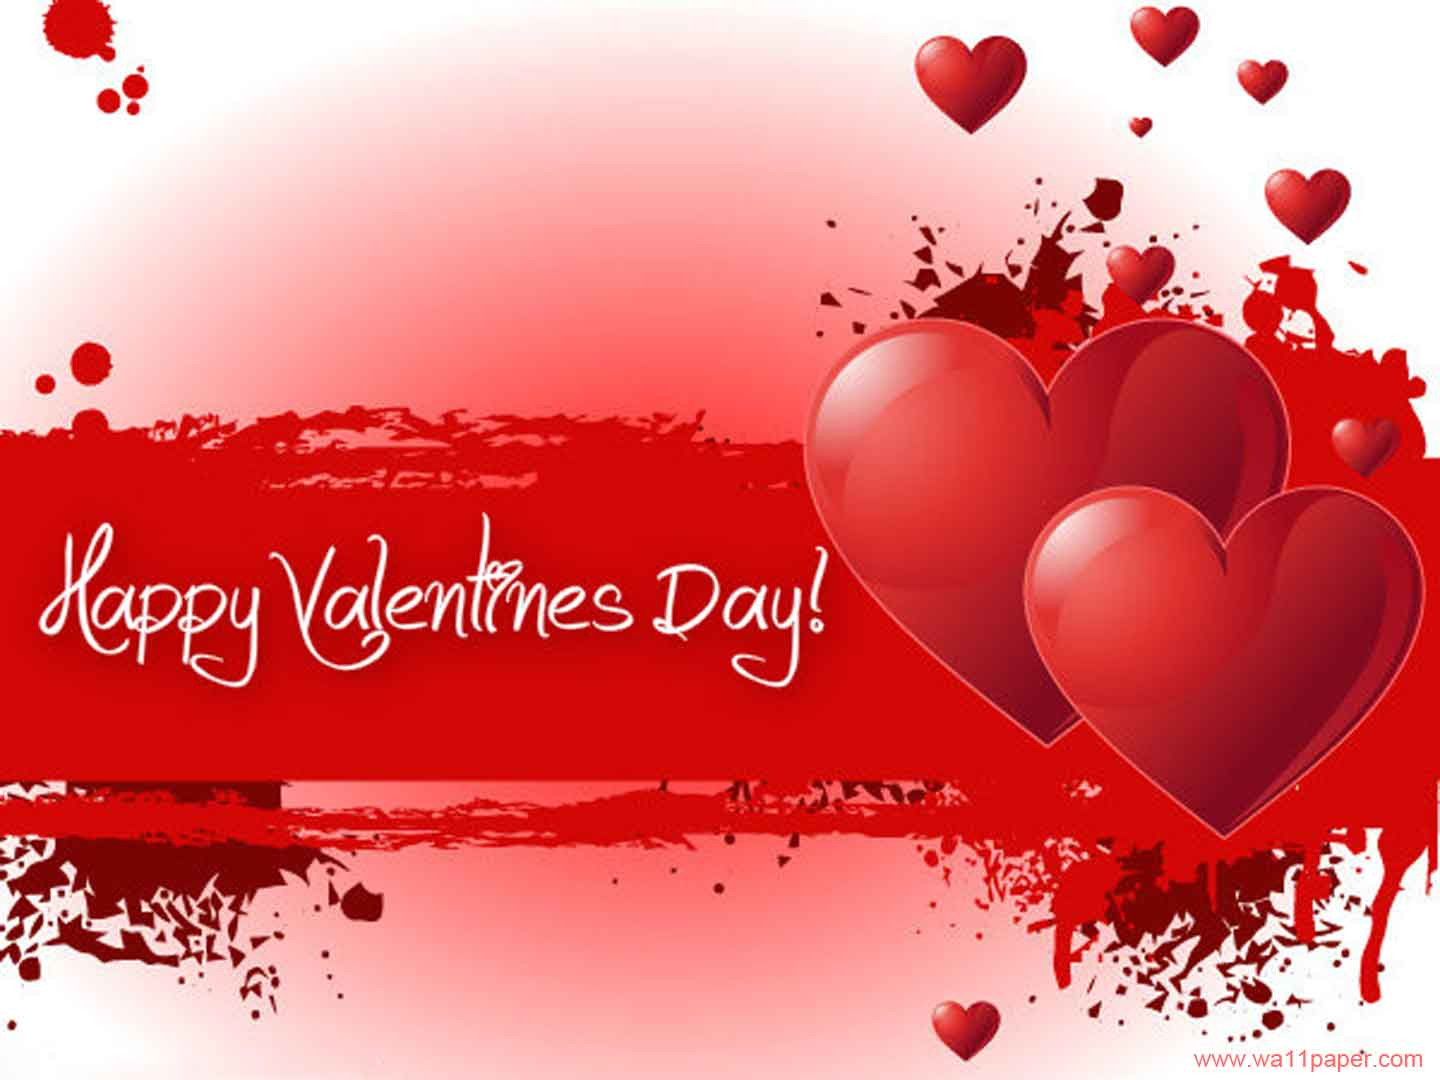 From What To Give To Where To Go, We Have Your Valentineu0027s Day Ideas Here